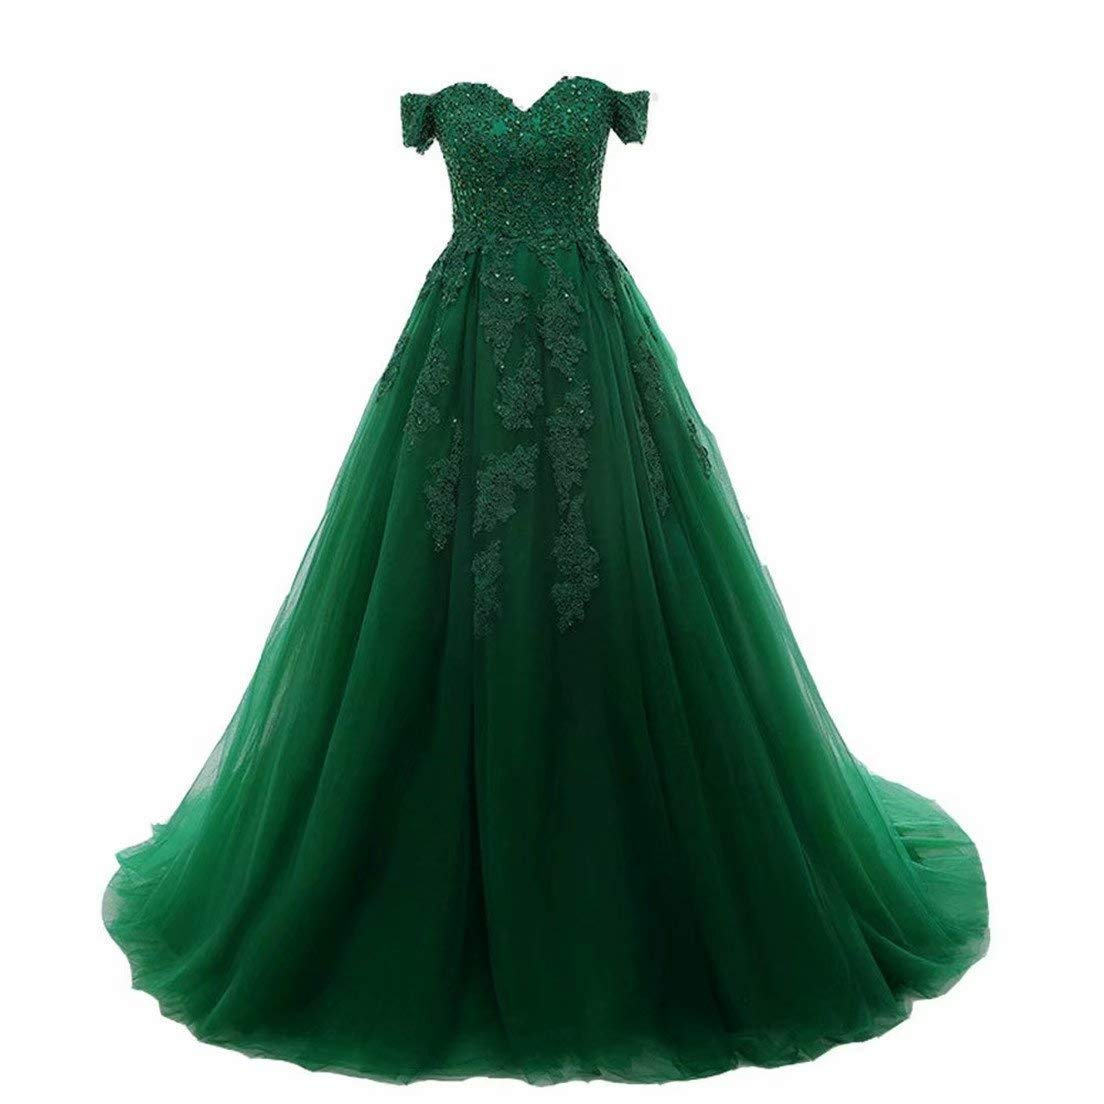 Emerald Green EEFZL Women's Beaded Lace Appliques Prom Dresses Tulle Evening Ball Gowns